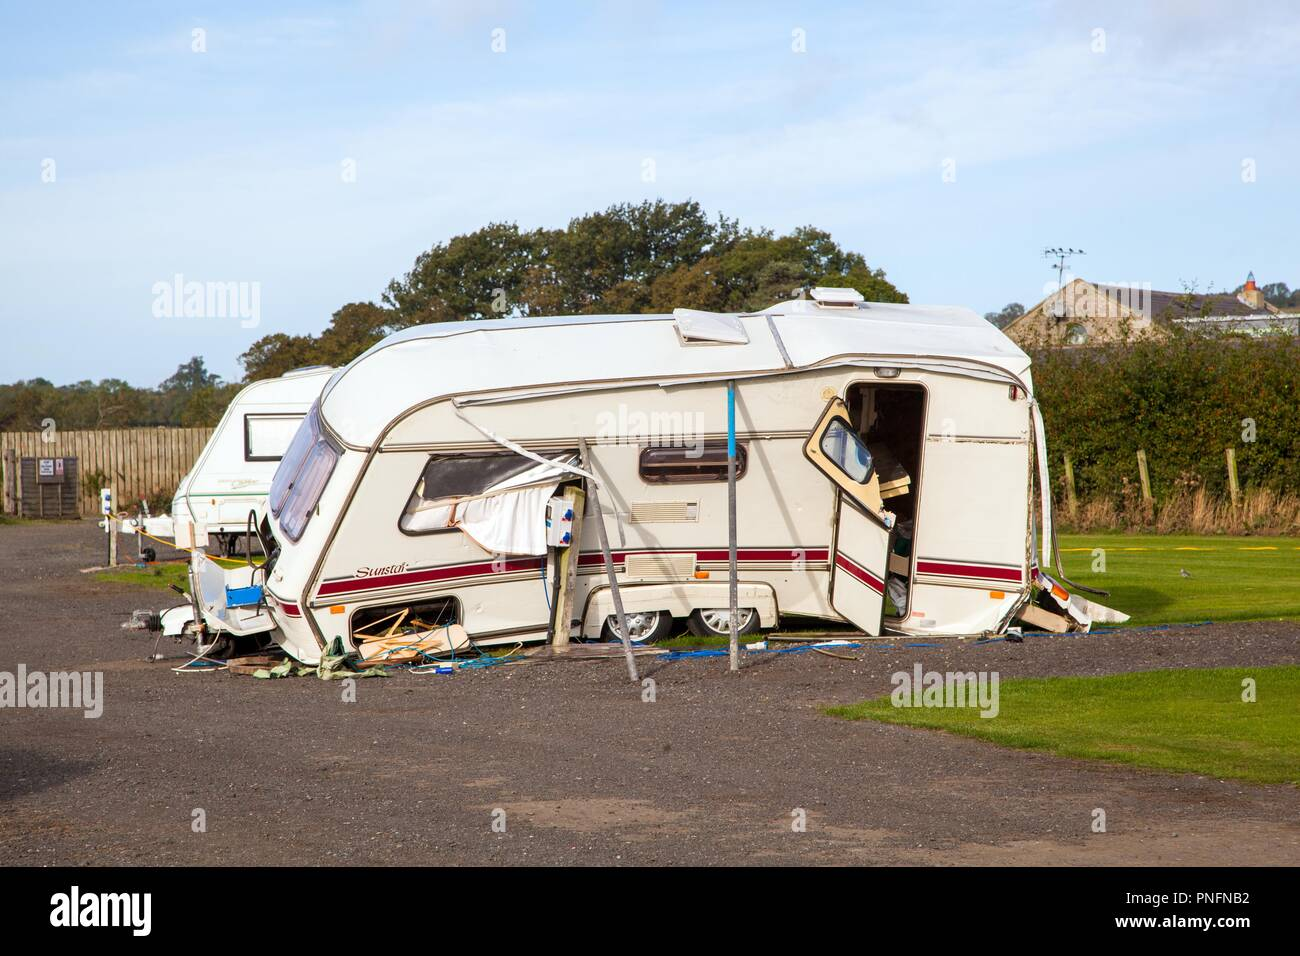 Alnwick, Northumberland. 20th Seot 2018. UK Weather: Touring caravan blown over and wrecked in high winds during storm Ali 20th September 2018 at Alnwick Northumberland England UK Credit: Nick Hatton/Alamy Live News Stock Photo